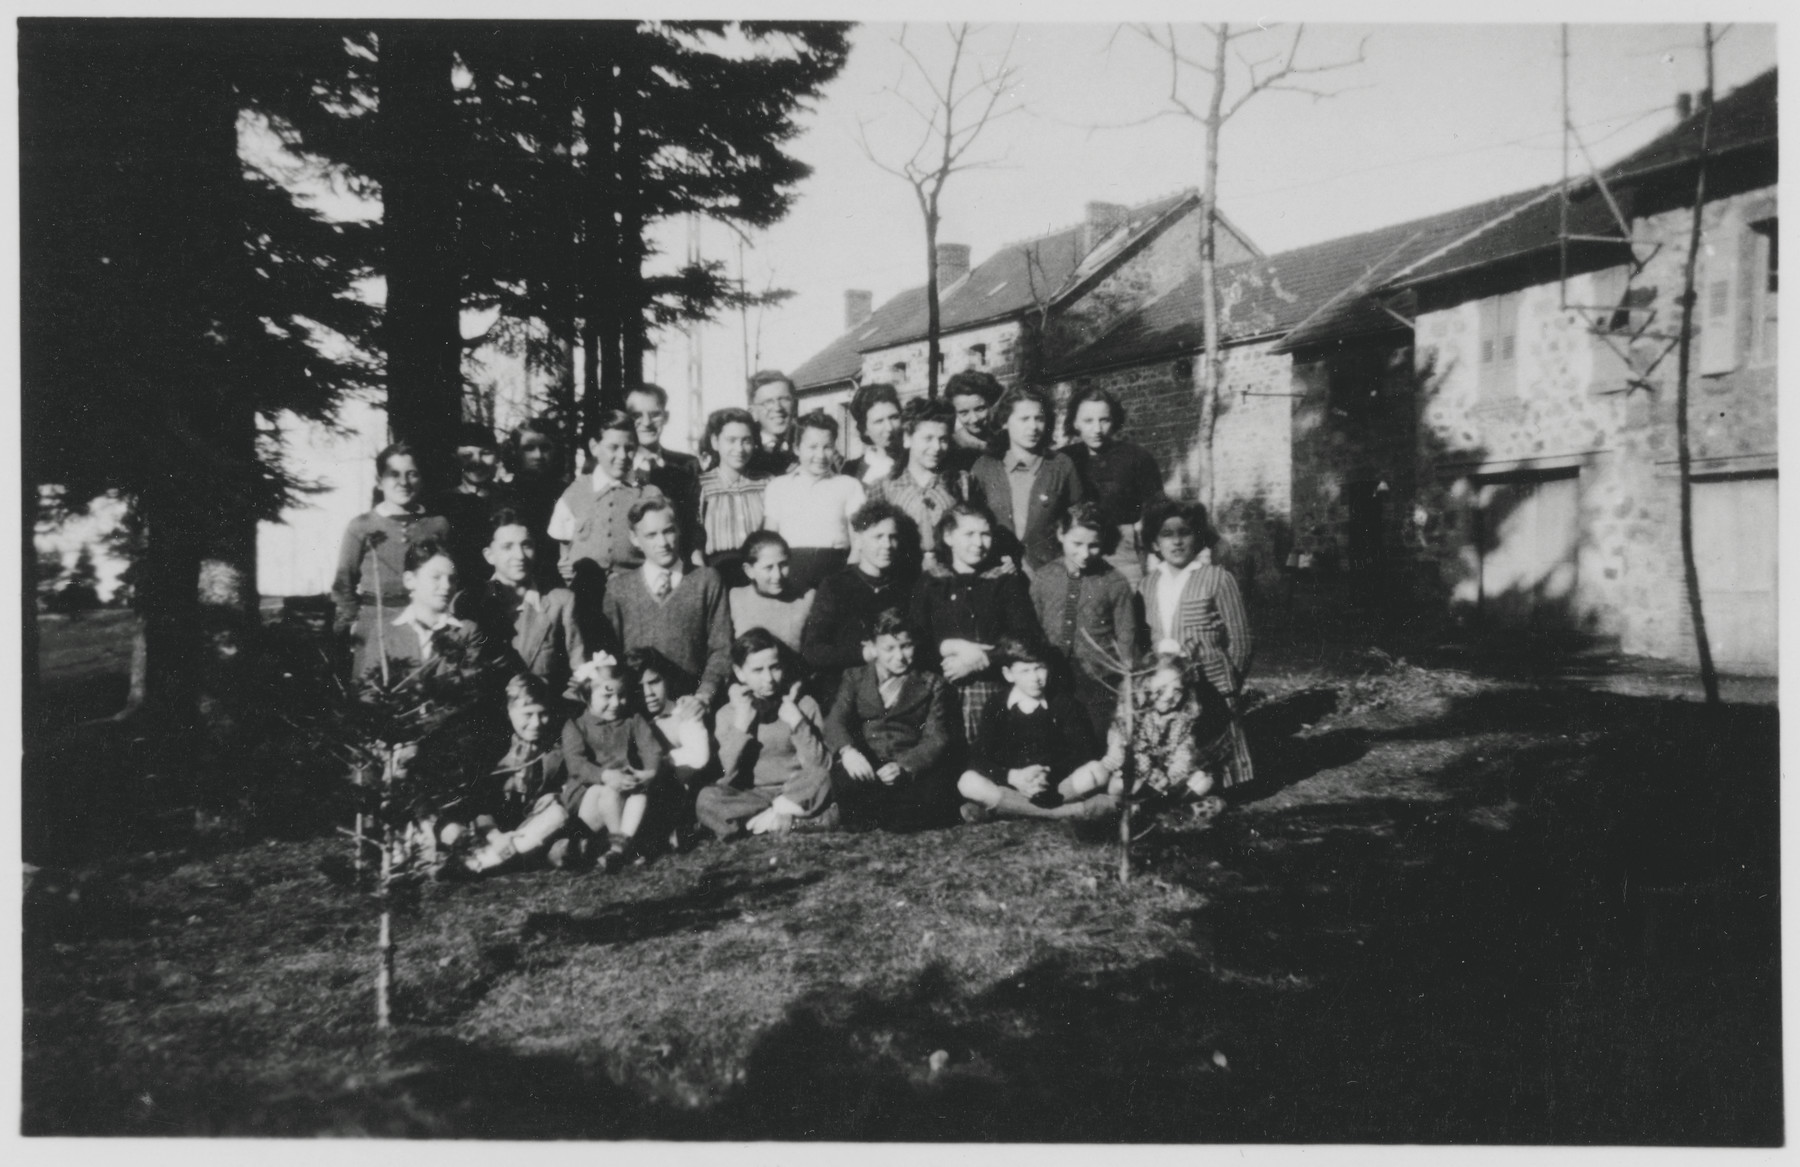 Group portrait of Jewish and non-Jewish refugee children sheltered in various public and private homes in Le Chambon-sur-Lignon during World War II with some of the French men and women who cared for them.  Among those pictured are: Daniel Trocmé (top row, center wearing glasses), Edouard Theis (top row, to the left of Daniel Trocmé), Peter Feigl (third row from the front, second from the left), Amede Dutry (third row from the front, far left), Kurt Grossman (second row from the front, far left), Jean Speigel (second row from the front, second from the left), Simone Fullenbaum (second row from the front, far right), Paul Fogelman (front row, center).